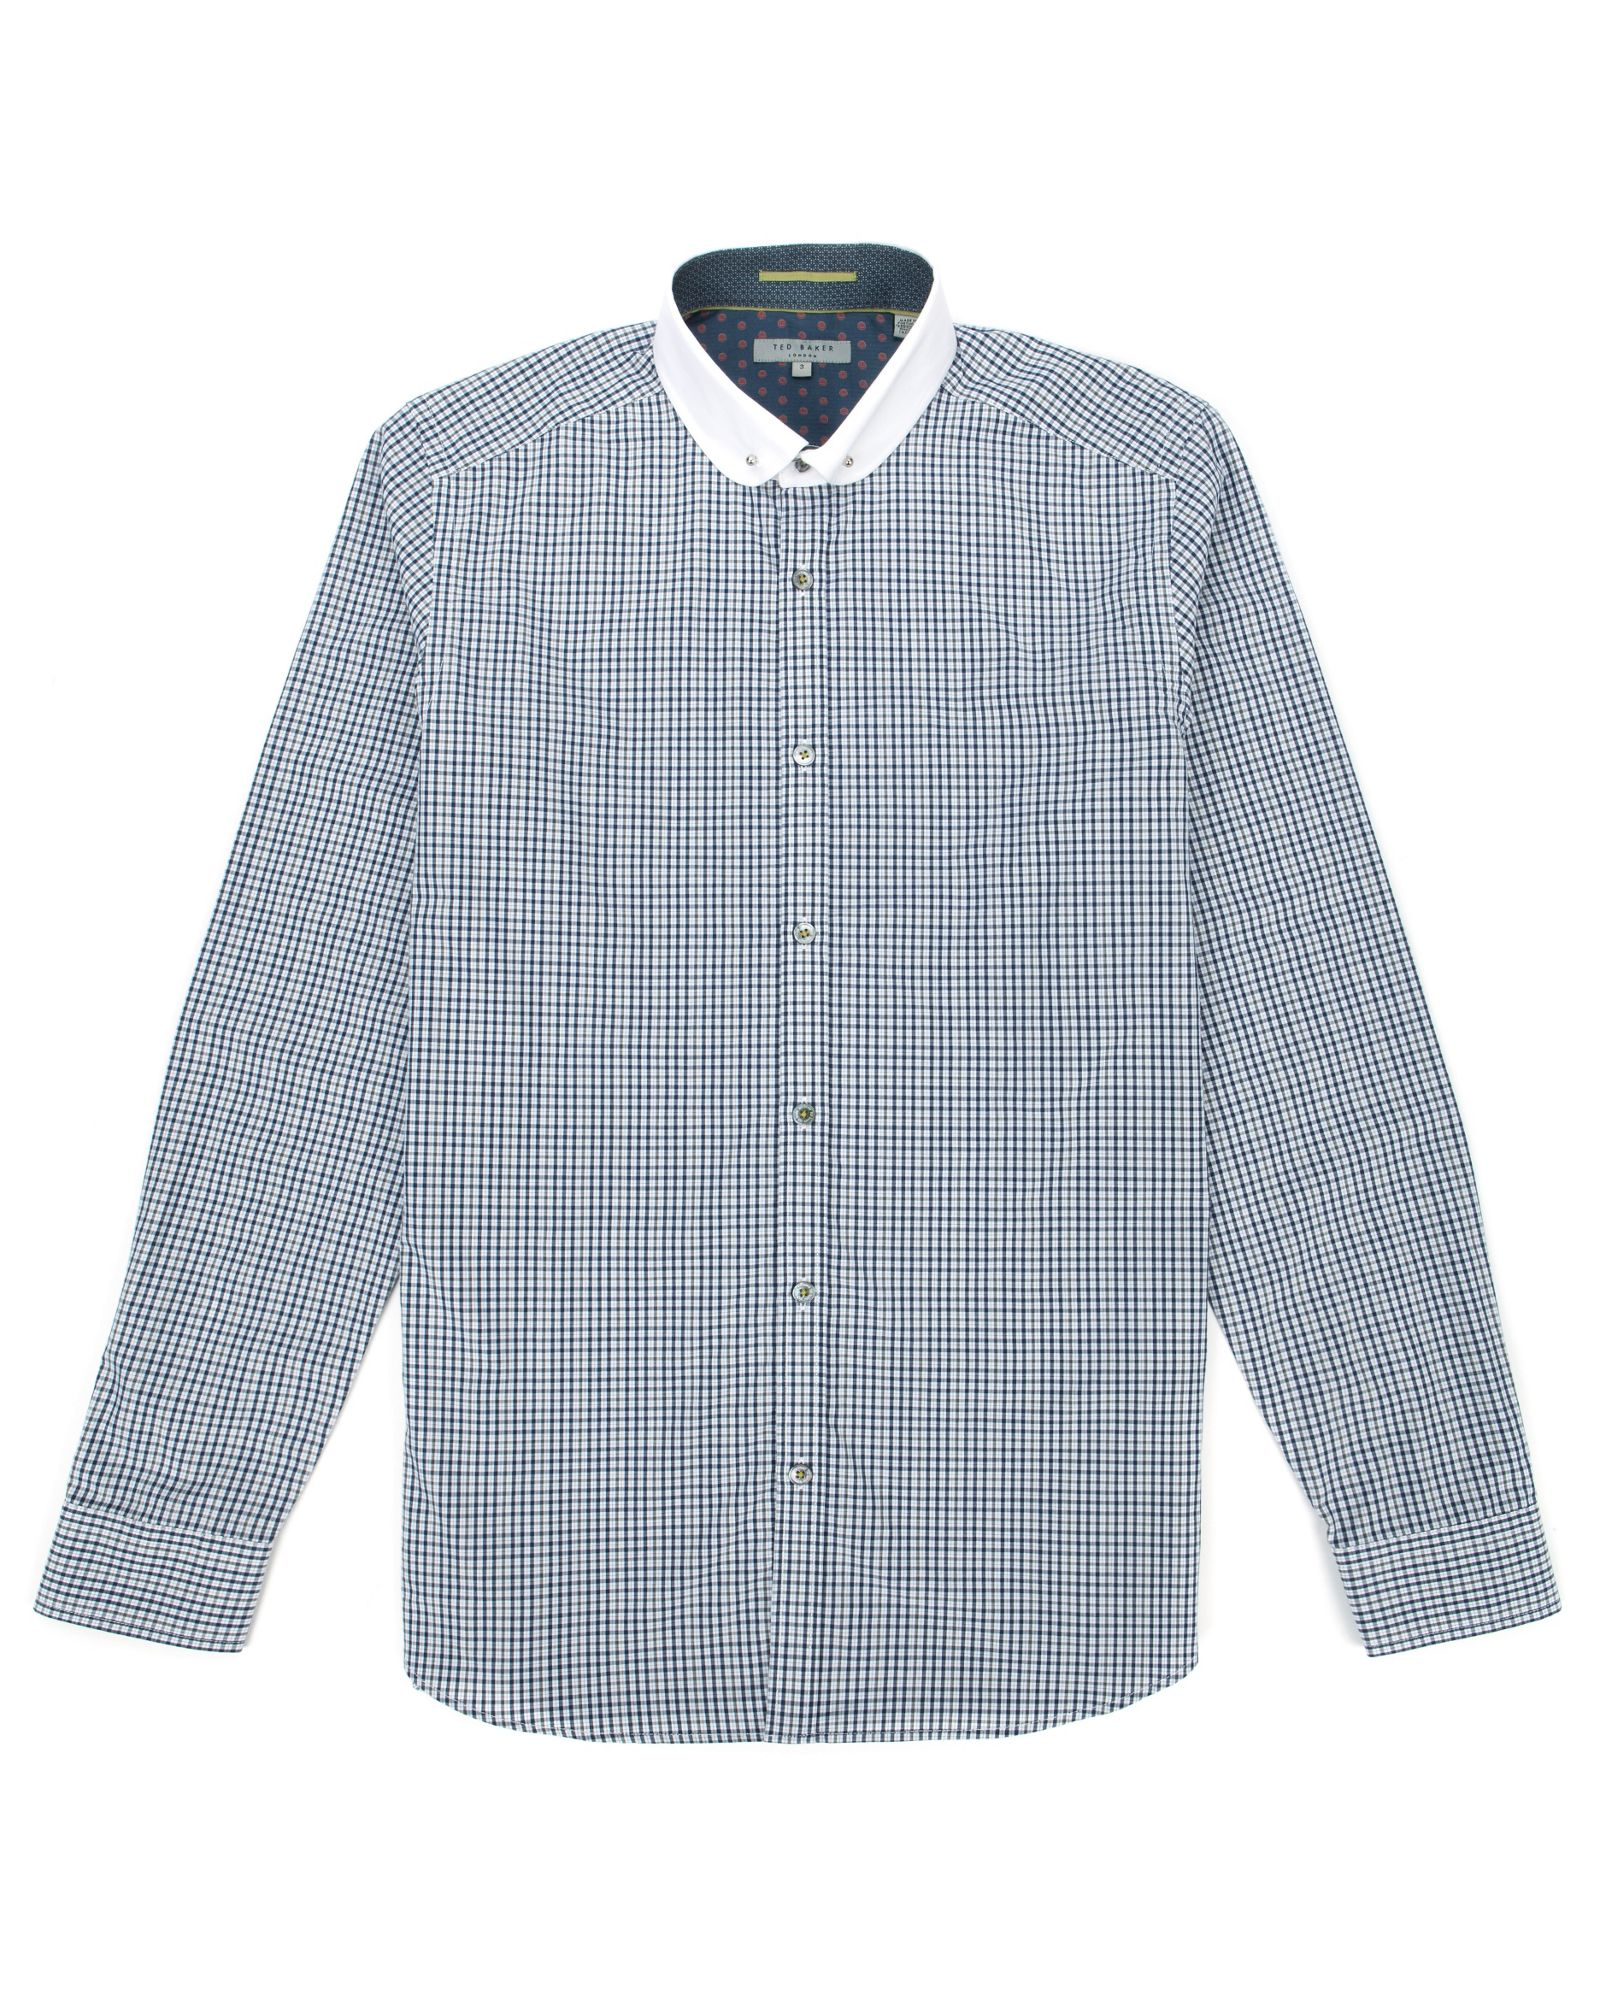 Ted baker blue knomore check round collar shirt for men for Round collar shirt men